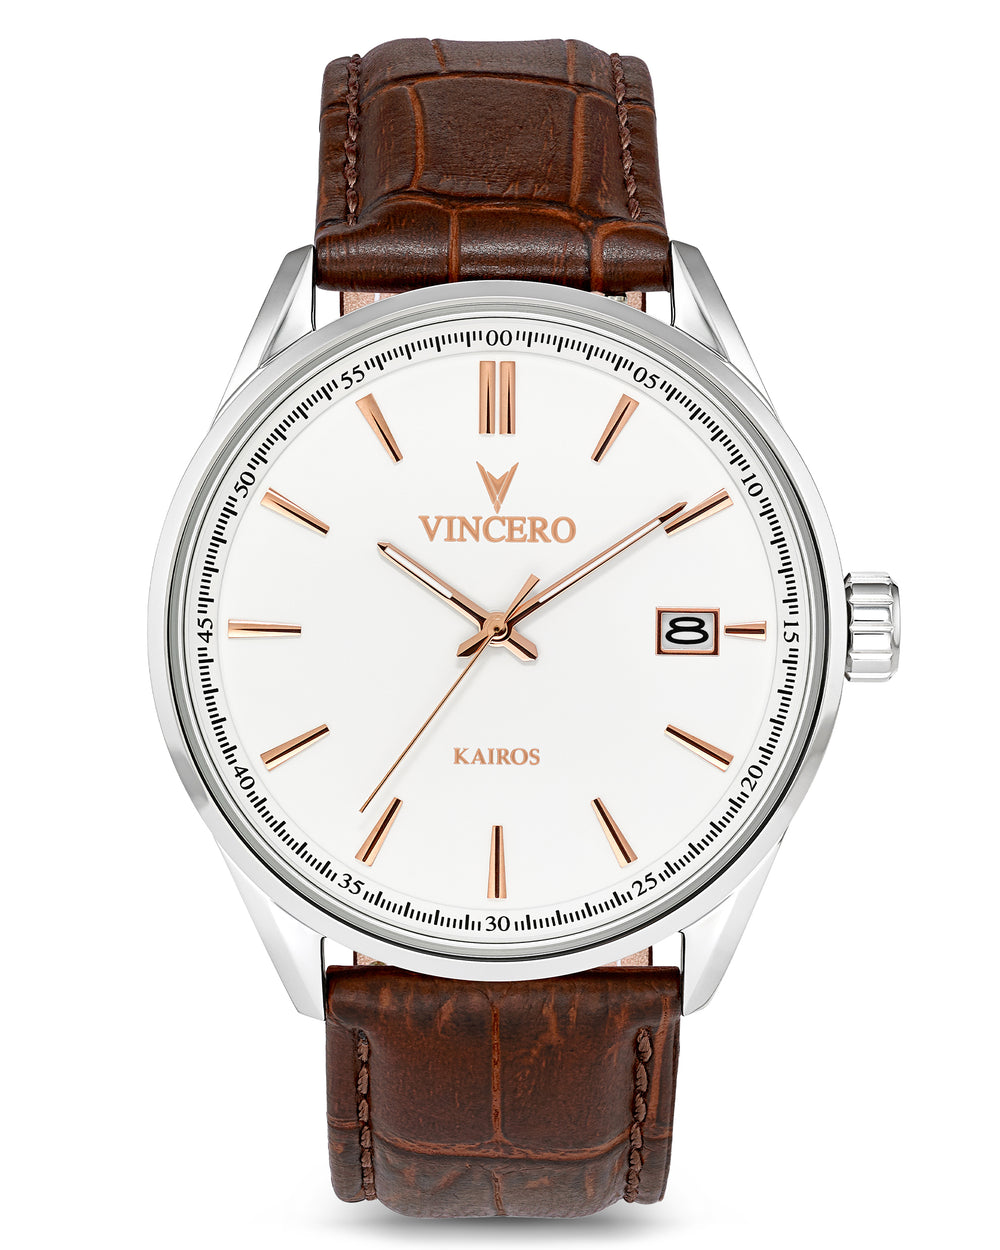 The Kairos - White/Rose Gold